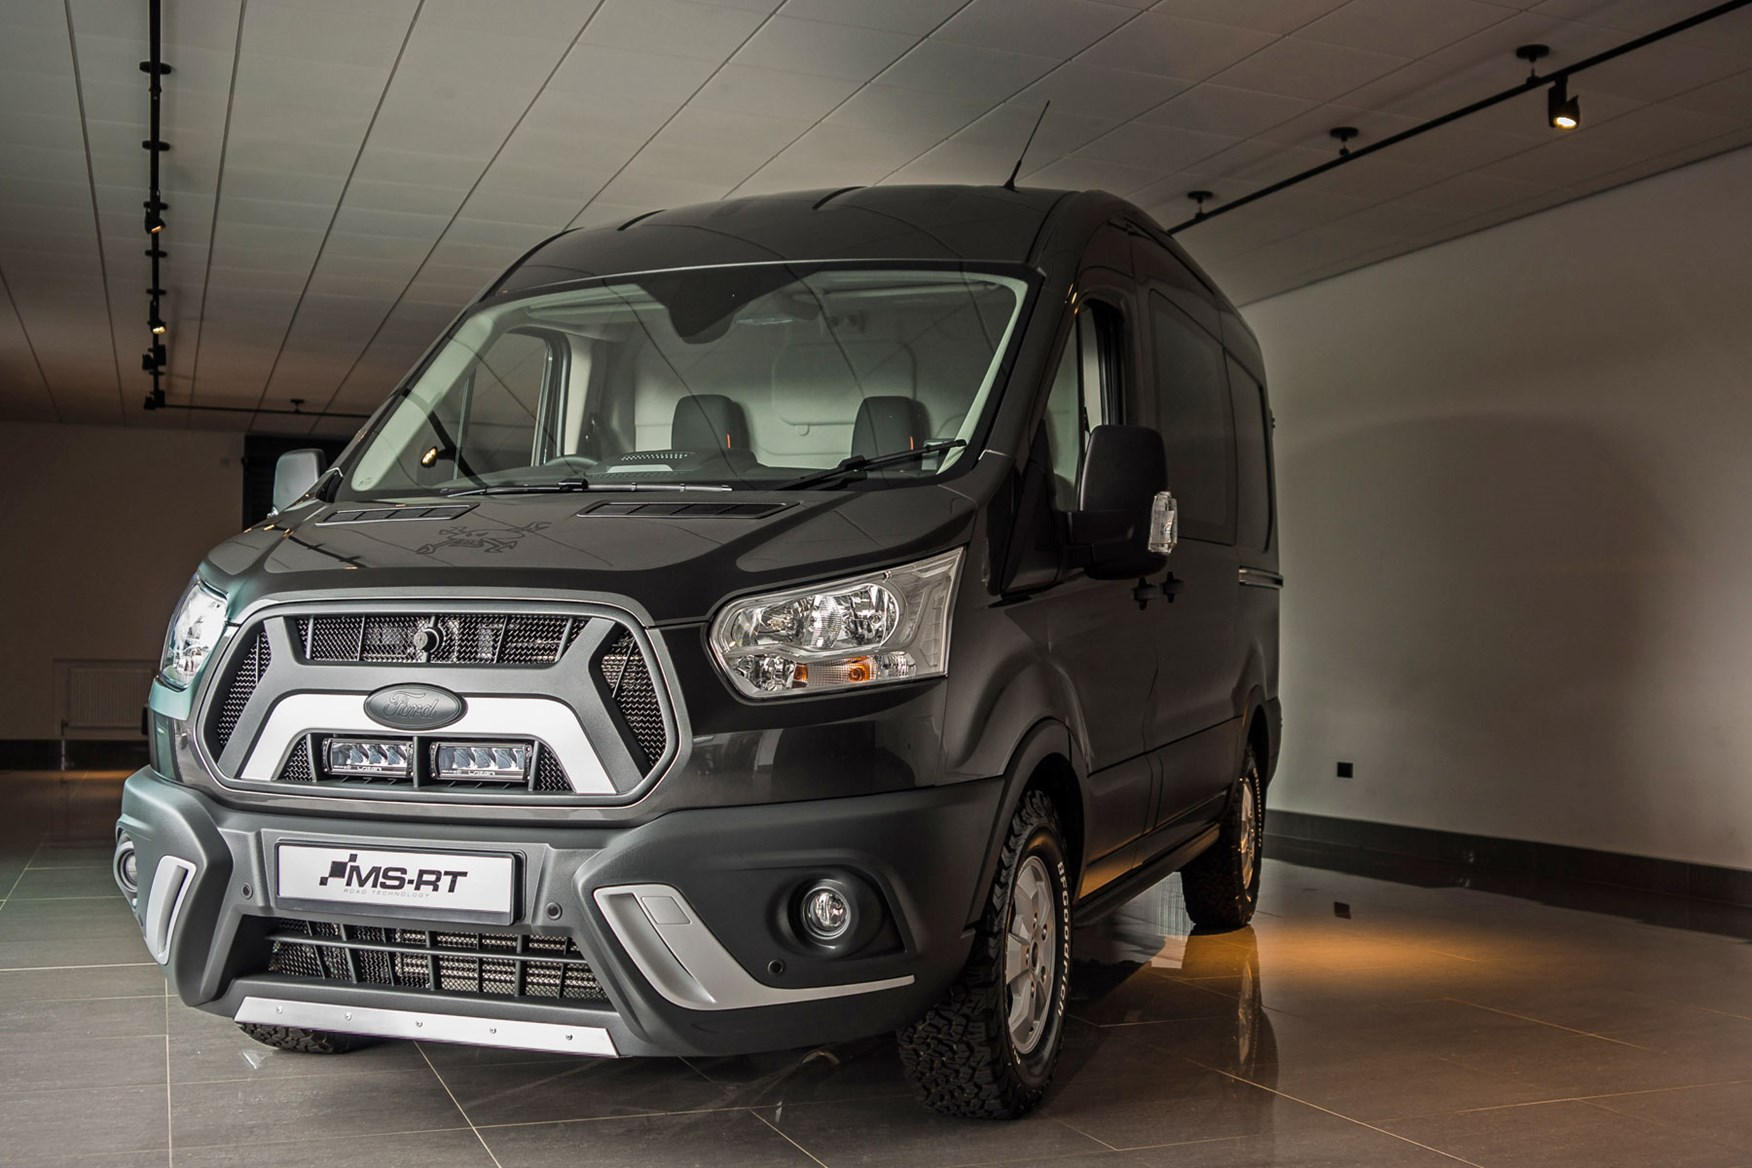 ab49487044 Ford Transit Guy Martin Edition review on Parkers Vans and Pickups ...